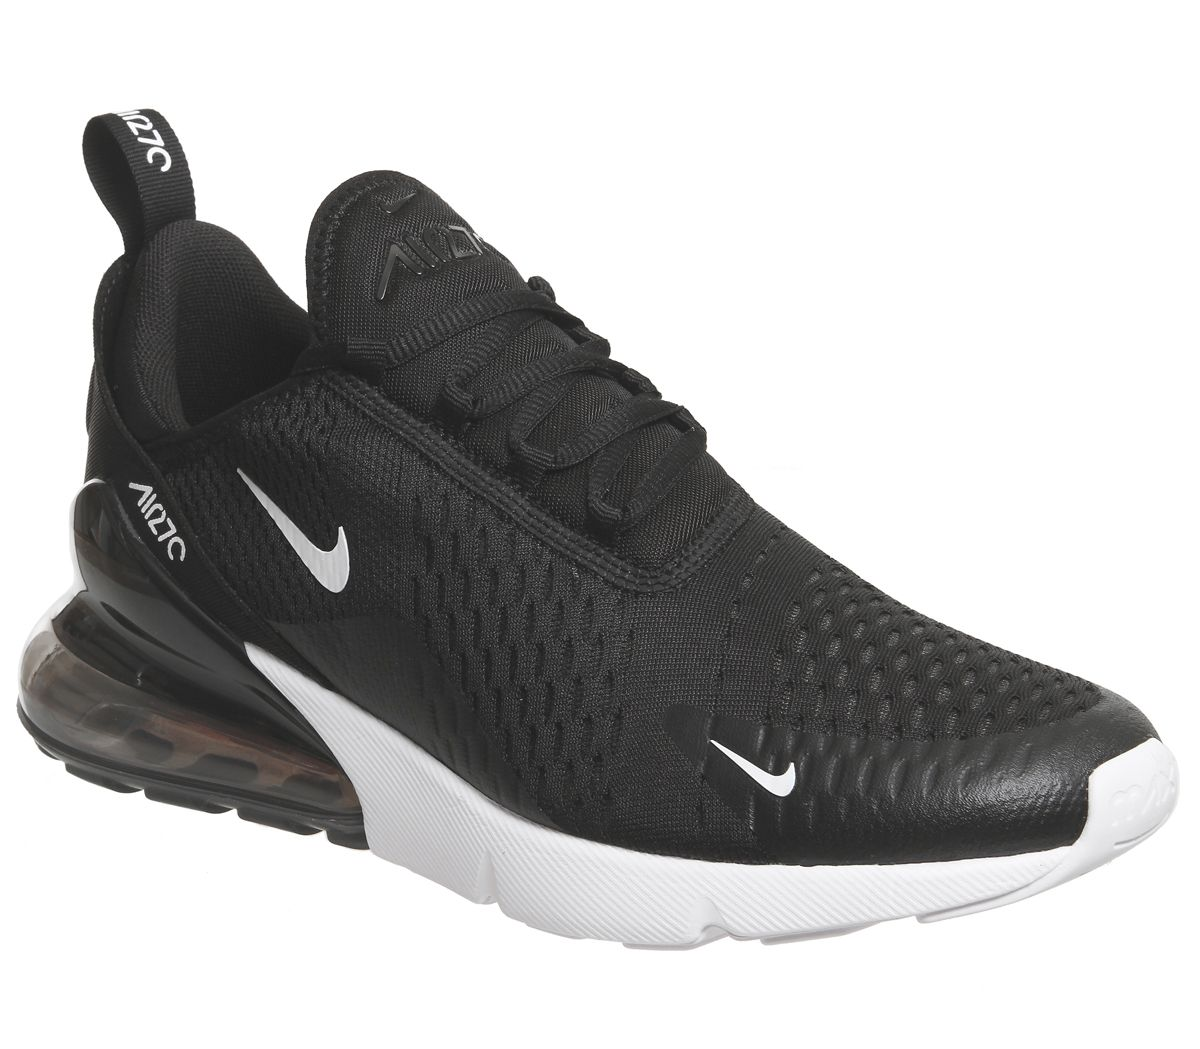 ce8c29208139 Nike Air Max 270 Trainers Black White - His trainers